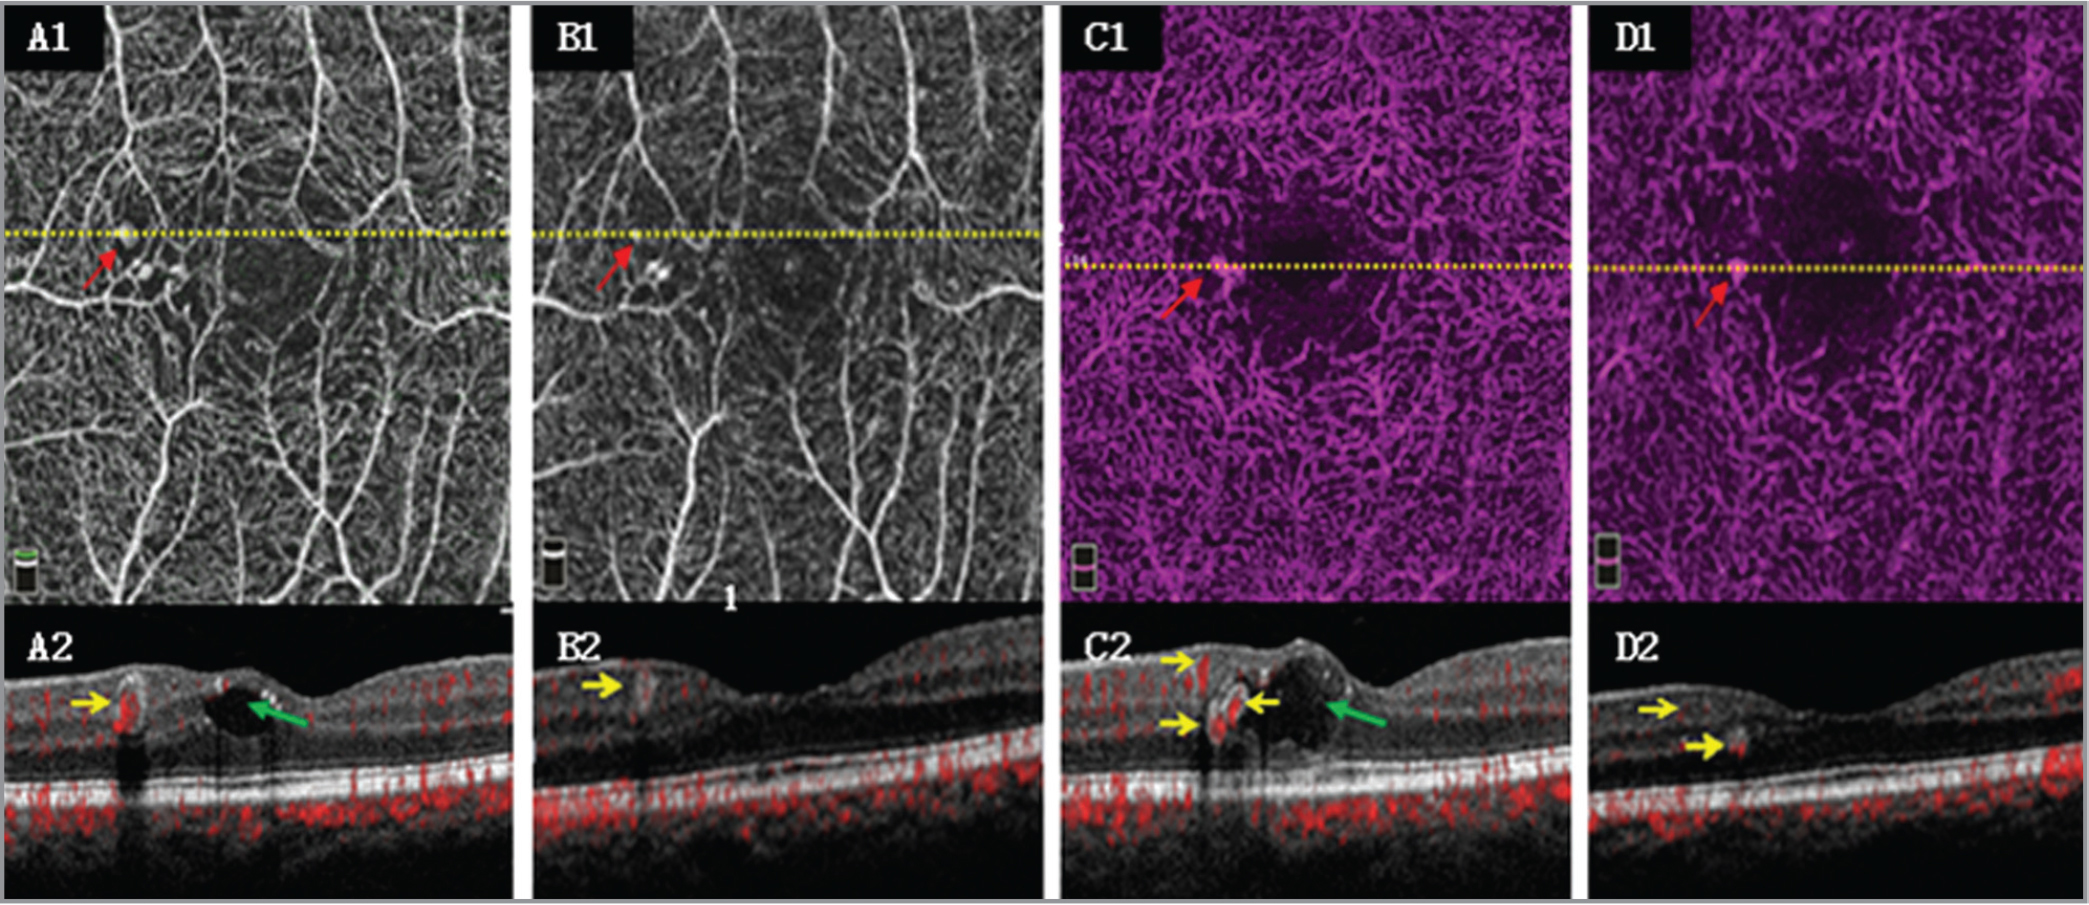 Case 1. Patient 2, a 71-year-old man, left eye. The left eye received three anti-vascular endothelial growth factors injections. (A1, A2, C1, C2) Baseline superficial and deep images, respectively. (B1, B2, D1, D2) Final images. Optical coherence tomography angiography (OCTA) B-scan images correspond to the section line (yellow dotted line) in the OCTA enface images. Comparing the final images with the baseline, OCTA enface images show that two hot spots were smaller (red arrow). OCTA B-scan images show that the retinal edema (green arrow) and one hot spot disappeared, whereas three hot spots became smaller with less blood flow signal (yellow arrow).